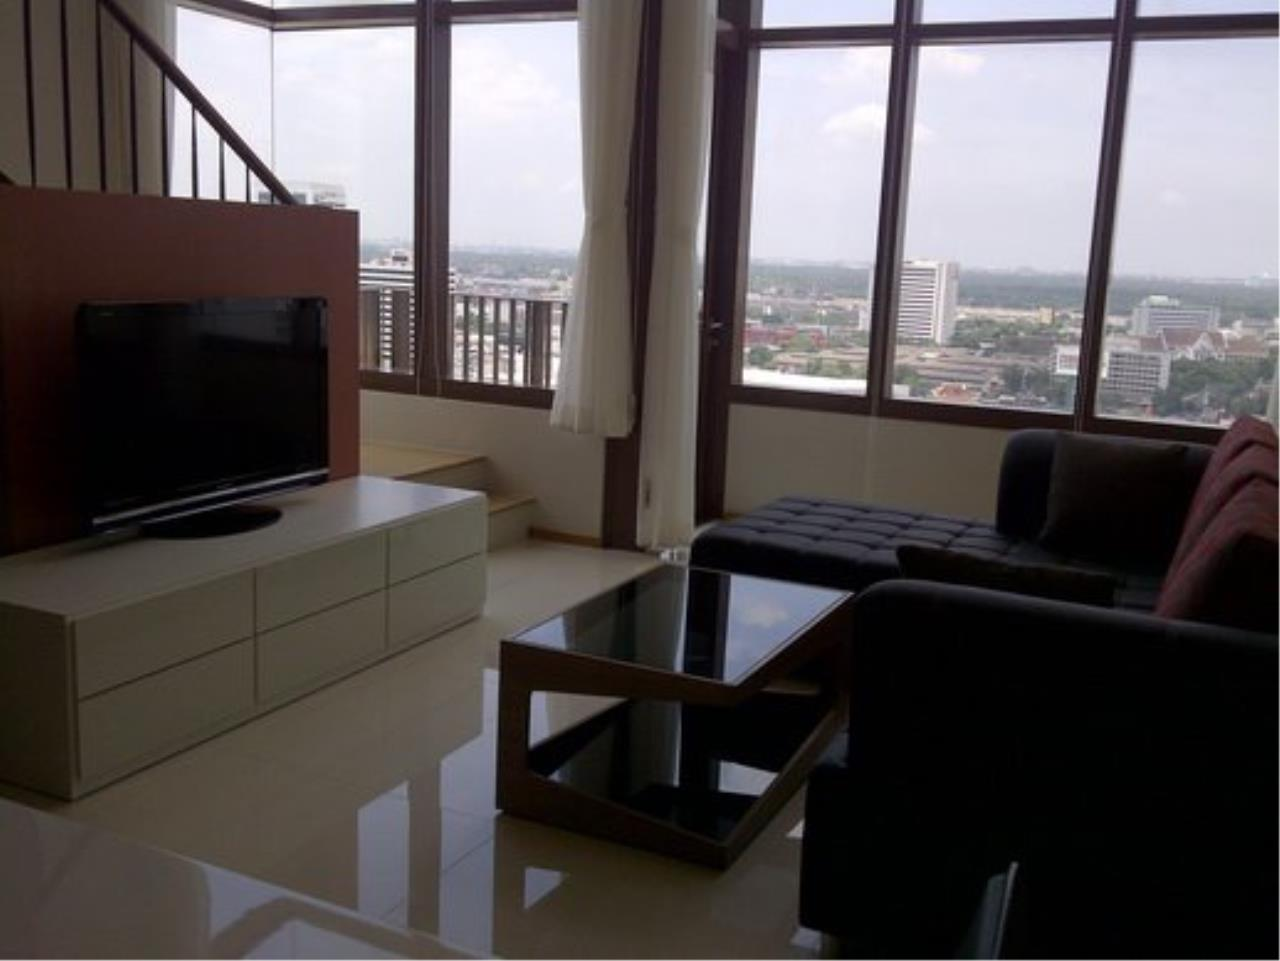 Piri Property Agency's Duplex 1 Bedroom Condo in the Emporio Place building for rent on high floor 4